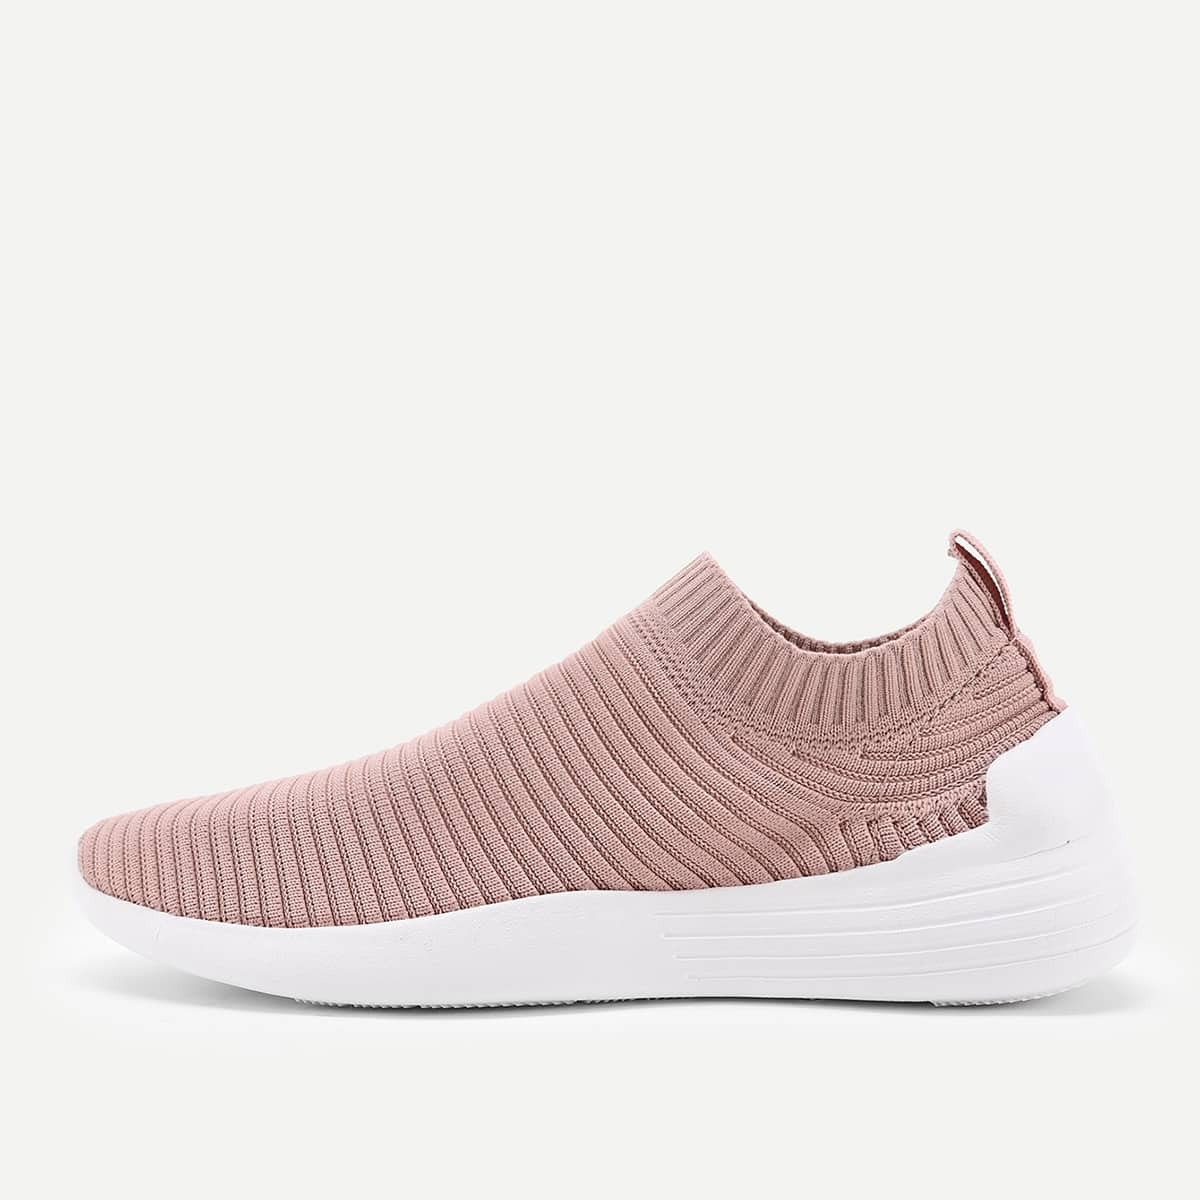 shein Knit Design Low Top Sneakers